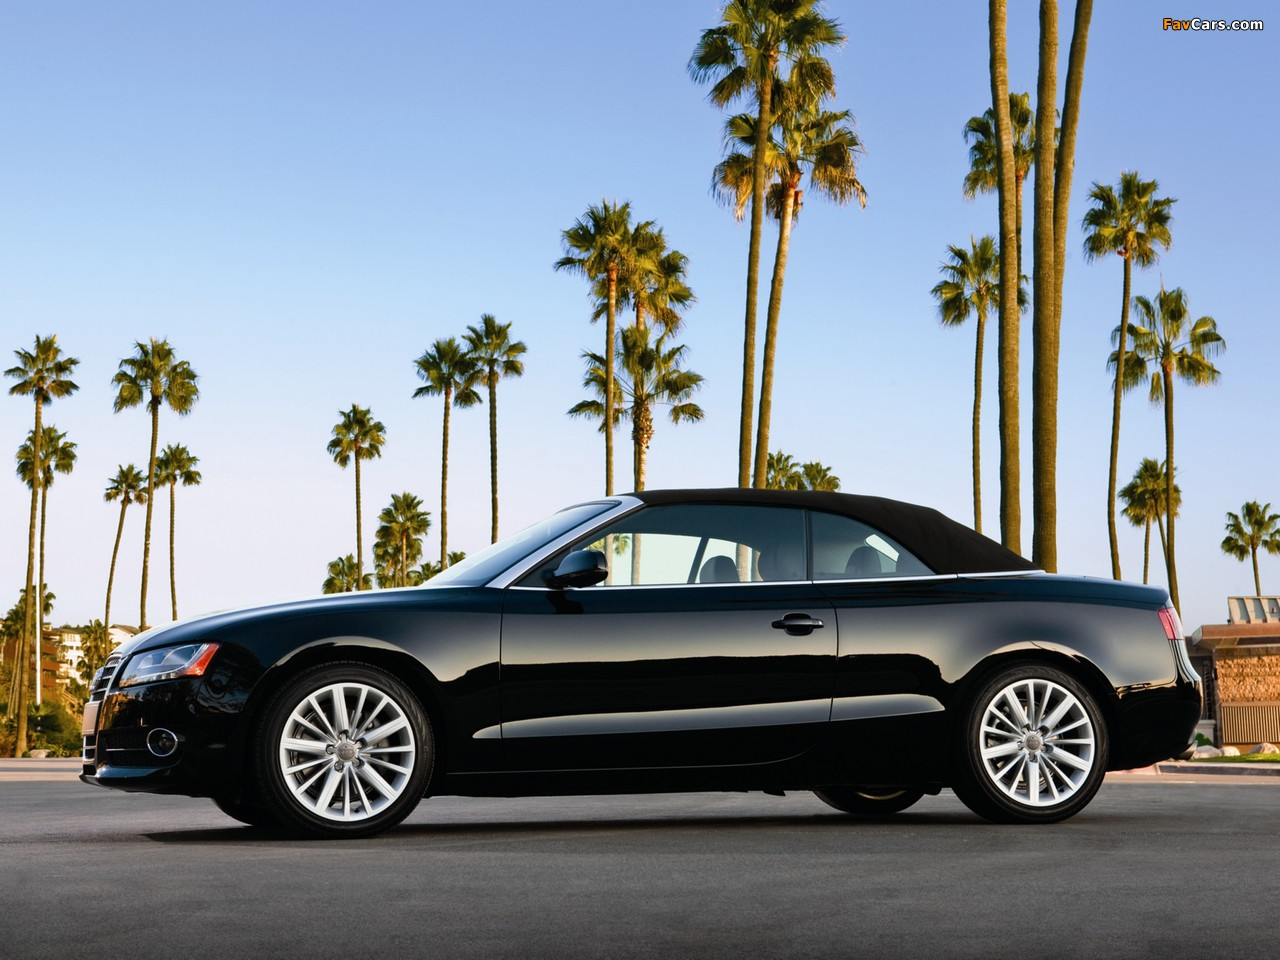 Photos Of Audi A5 2 0t Cabriolet Us Spec 2009 11 1280x960